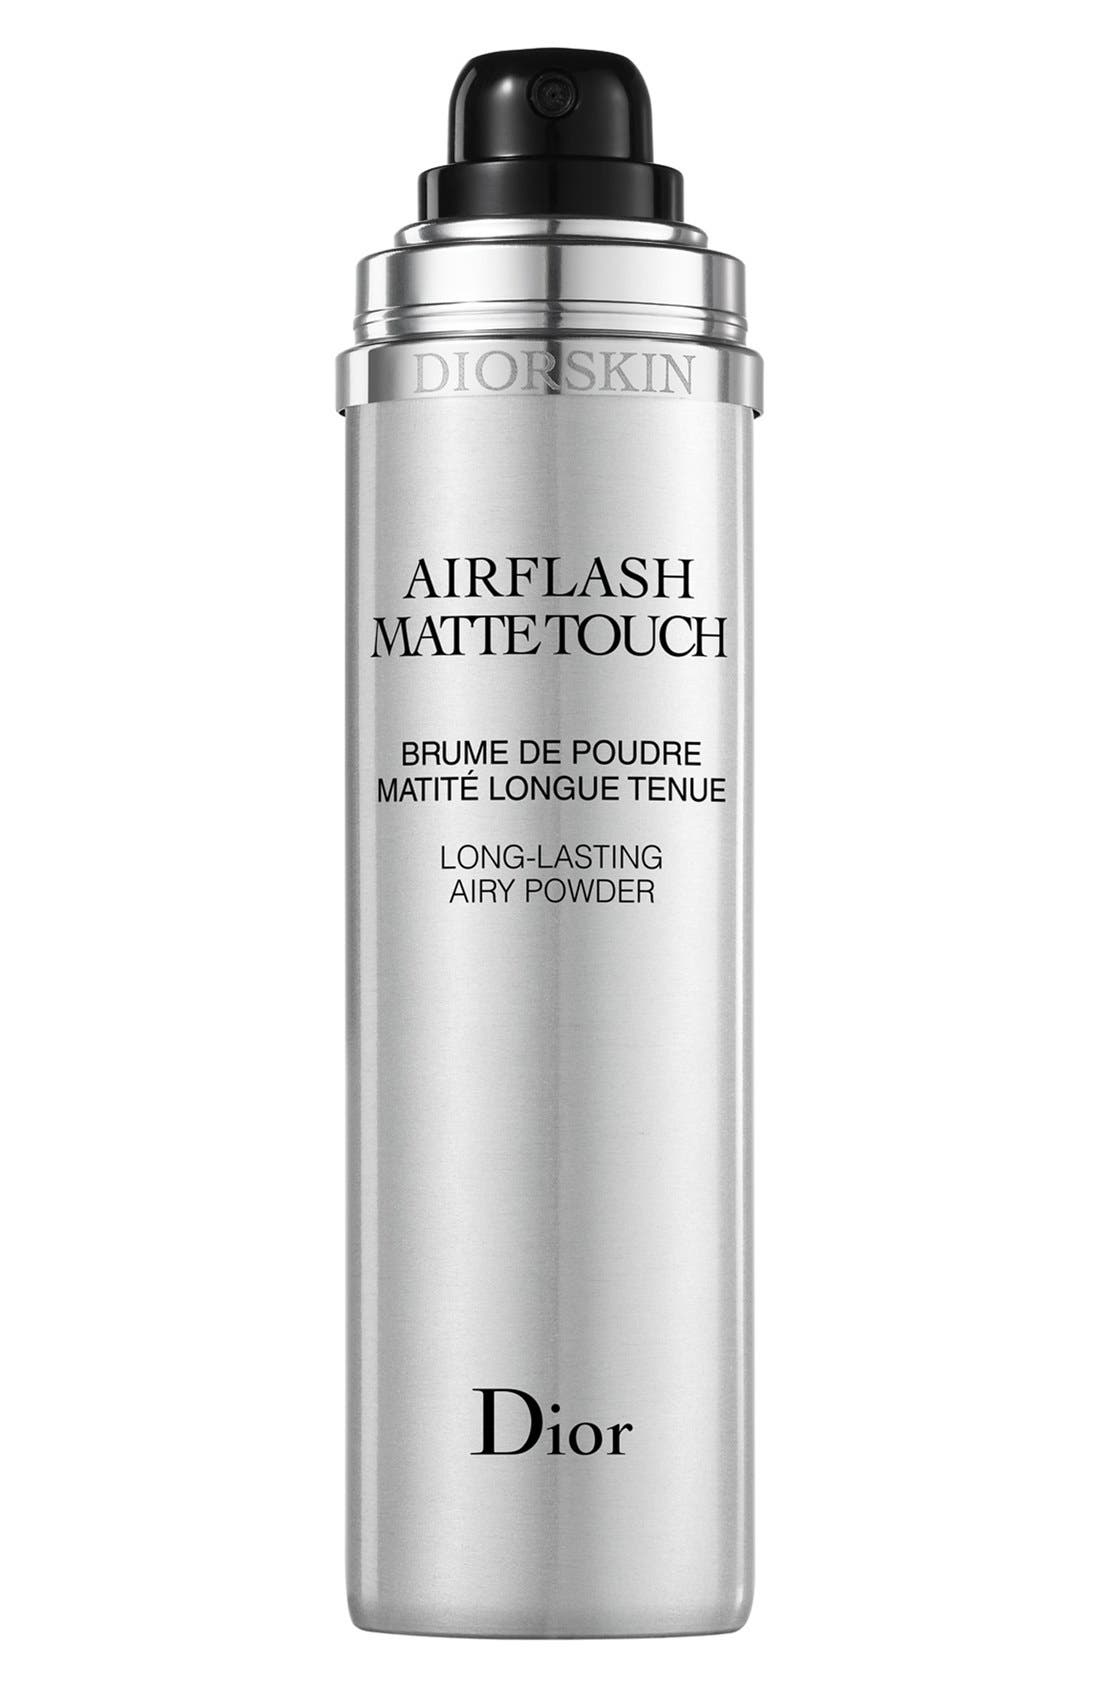 'Airflash - Matte Touch' Long-Lasting Airy Powder Finishing Spray,                             Alternate thumbnail 2, color,                             000